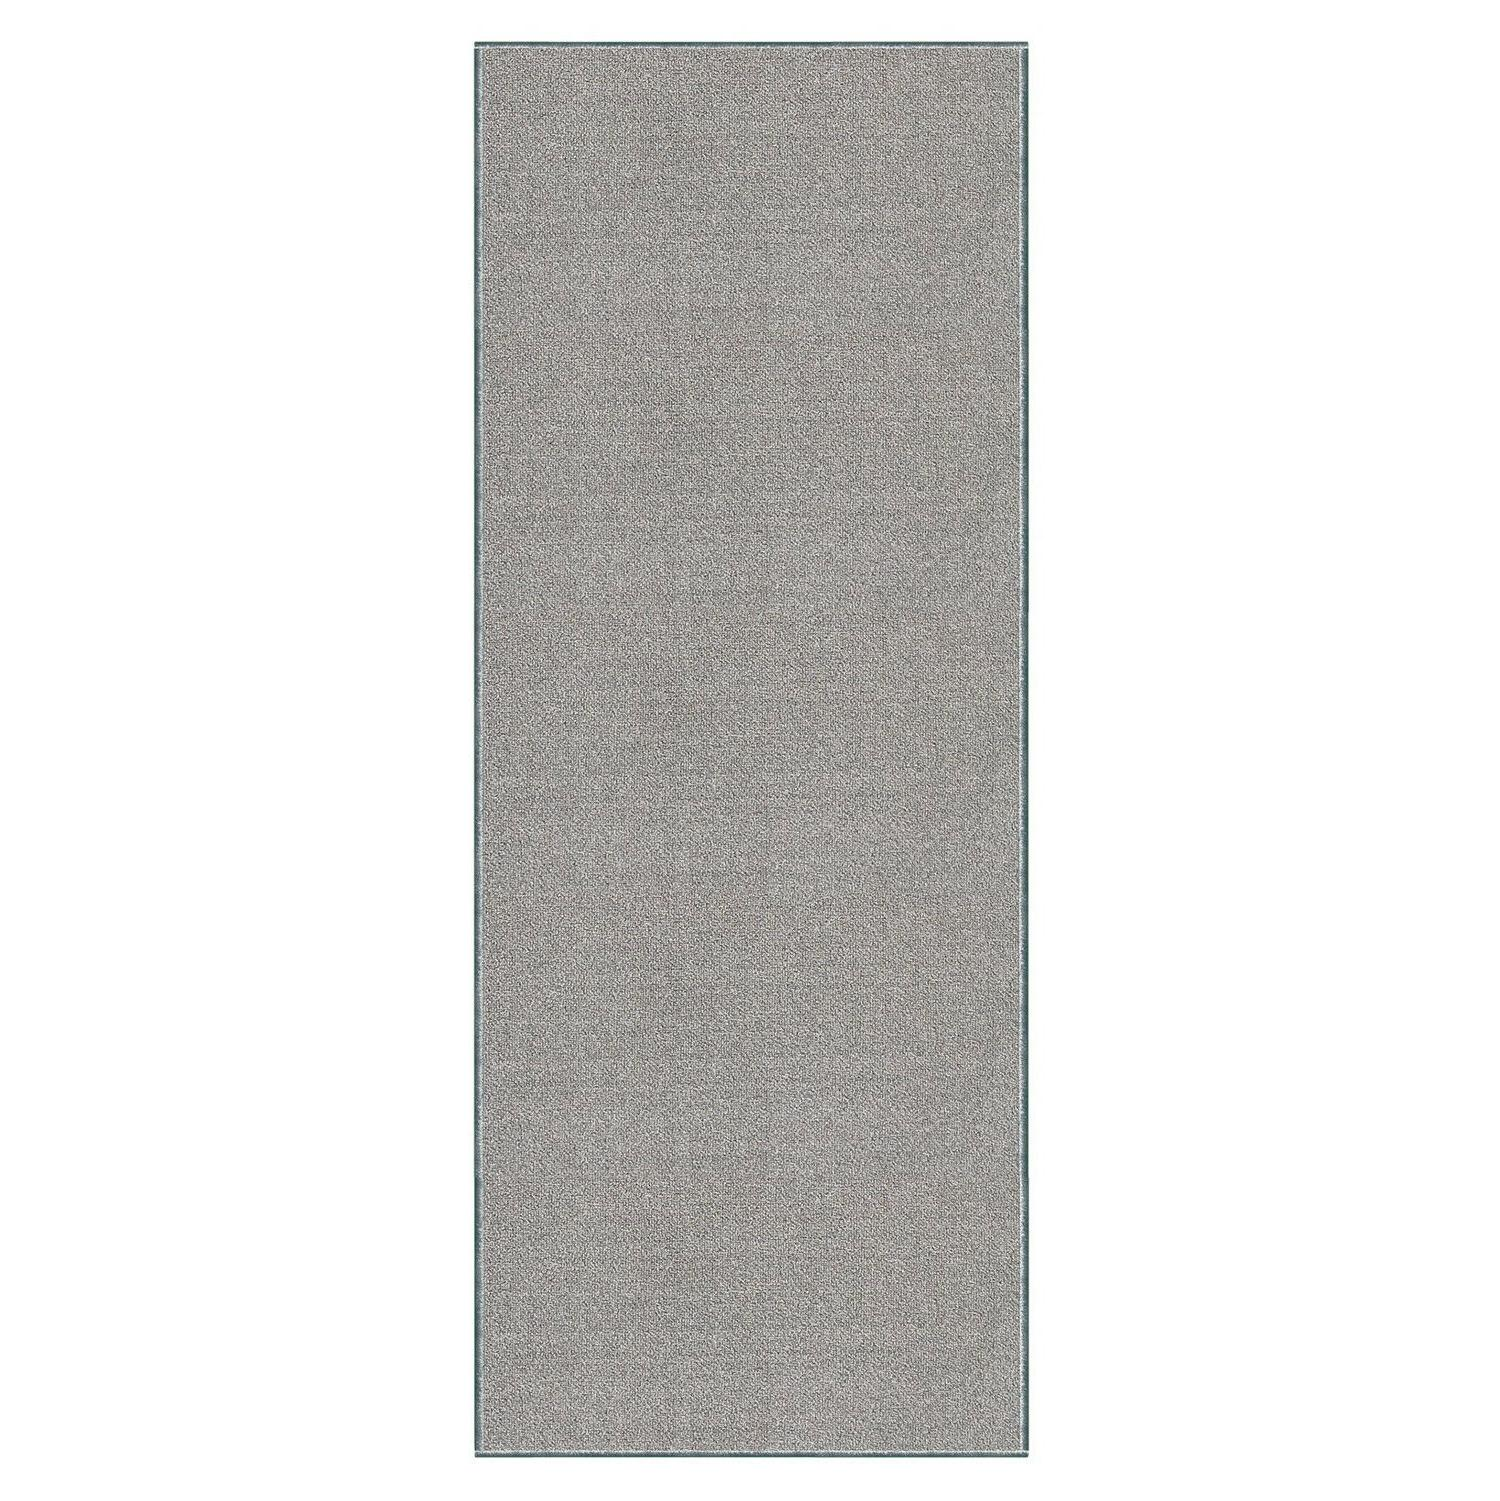 Custom Size SOLID Stair Runner Non Rubber GRAY